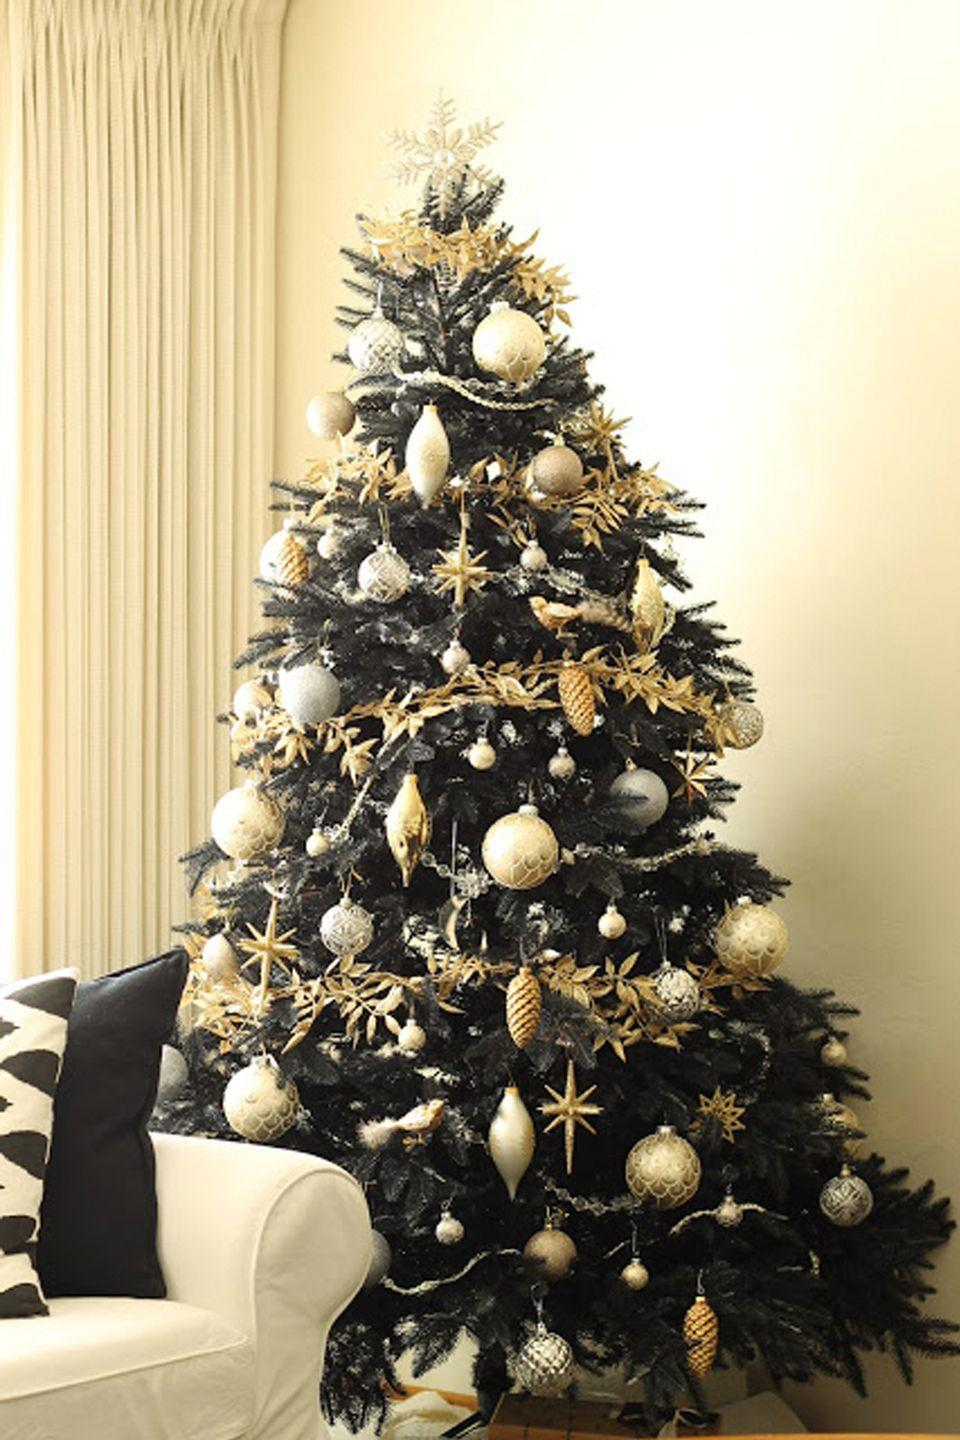 "<p>A black tree doesn't have to be rebellious and dark. It can also be festive, charming, and unique—this tree by <a href=""https://www.copycatchic.com/2013/11/copy-cat-chic-giveaway-treetopia.html"" rel=""nofollow noopener"" target=""_blank"" data-ylk=""slk:Copy Cat Chic"" class=""link rapid-noclick-resp"">Copy Cat Chic</a> is proof. </p>"